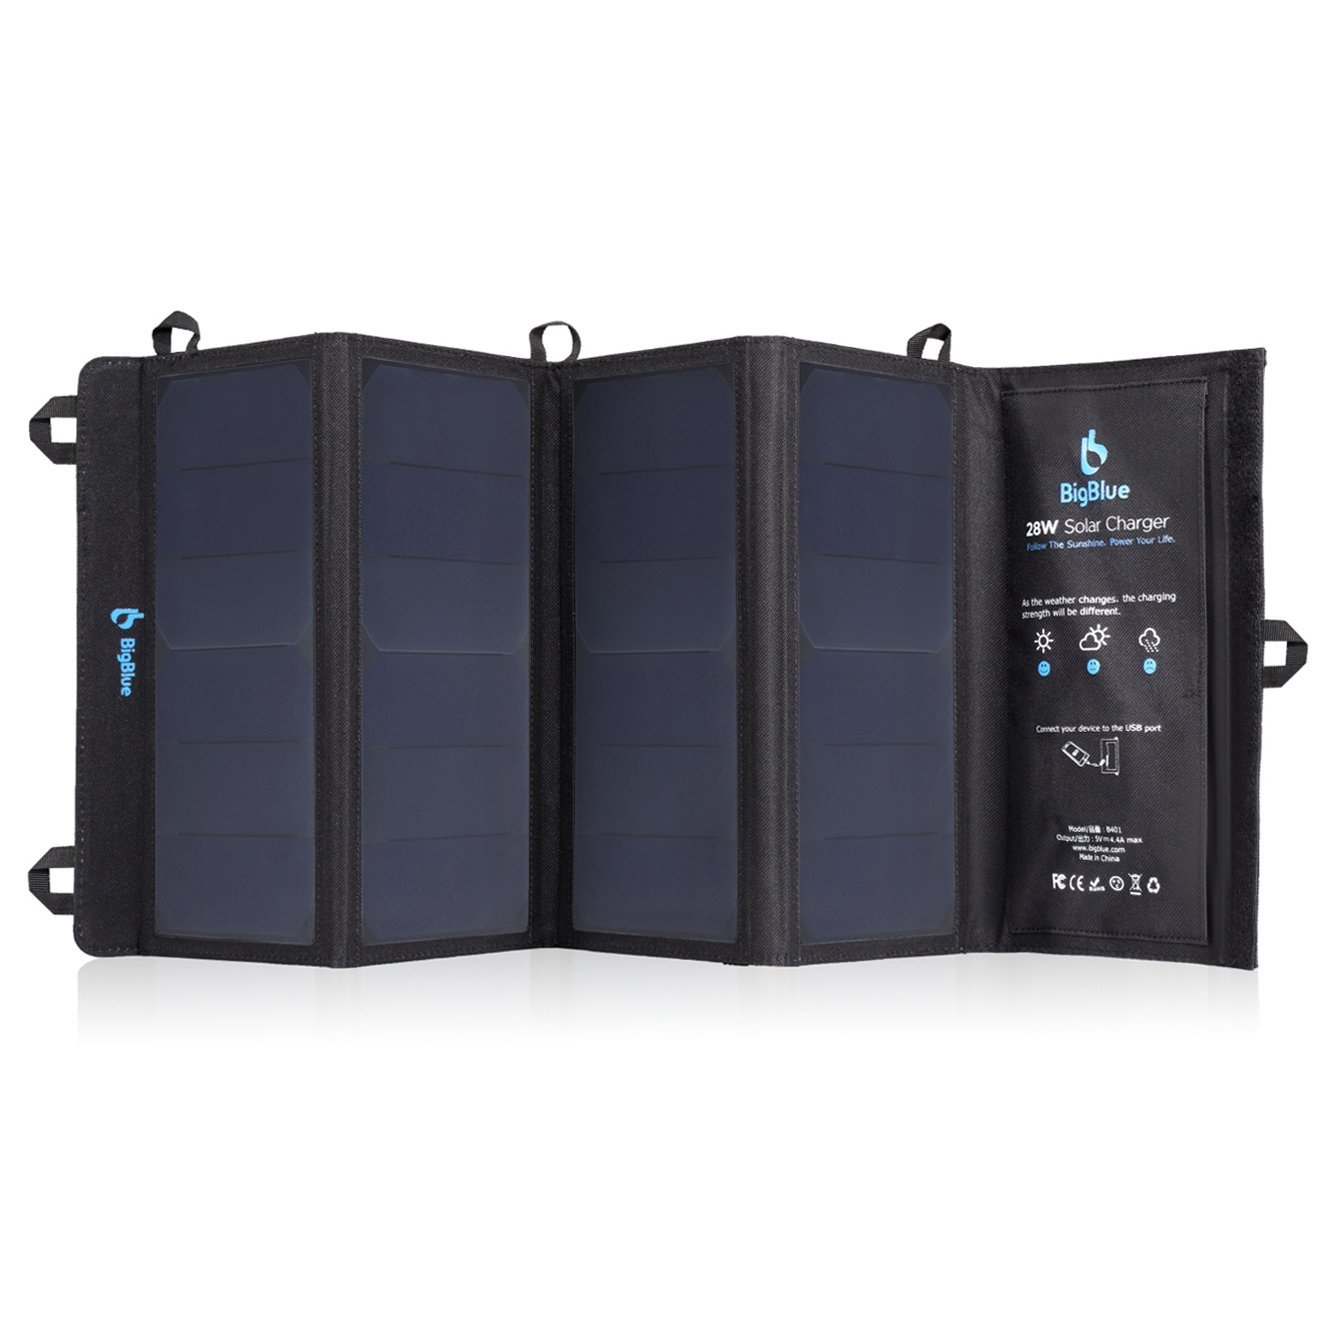 Foldable outdoor solar powered charger with sunpower